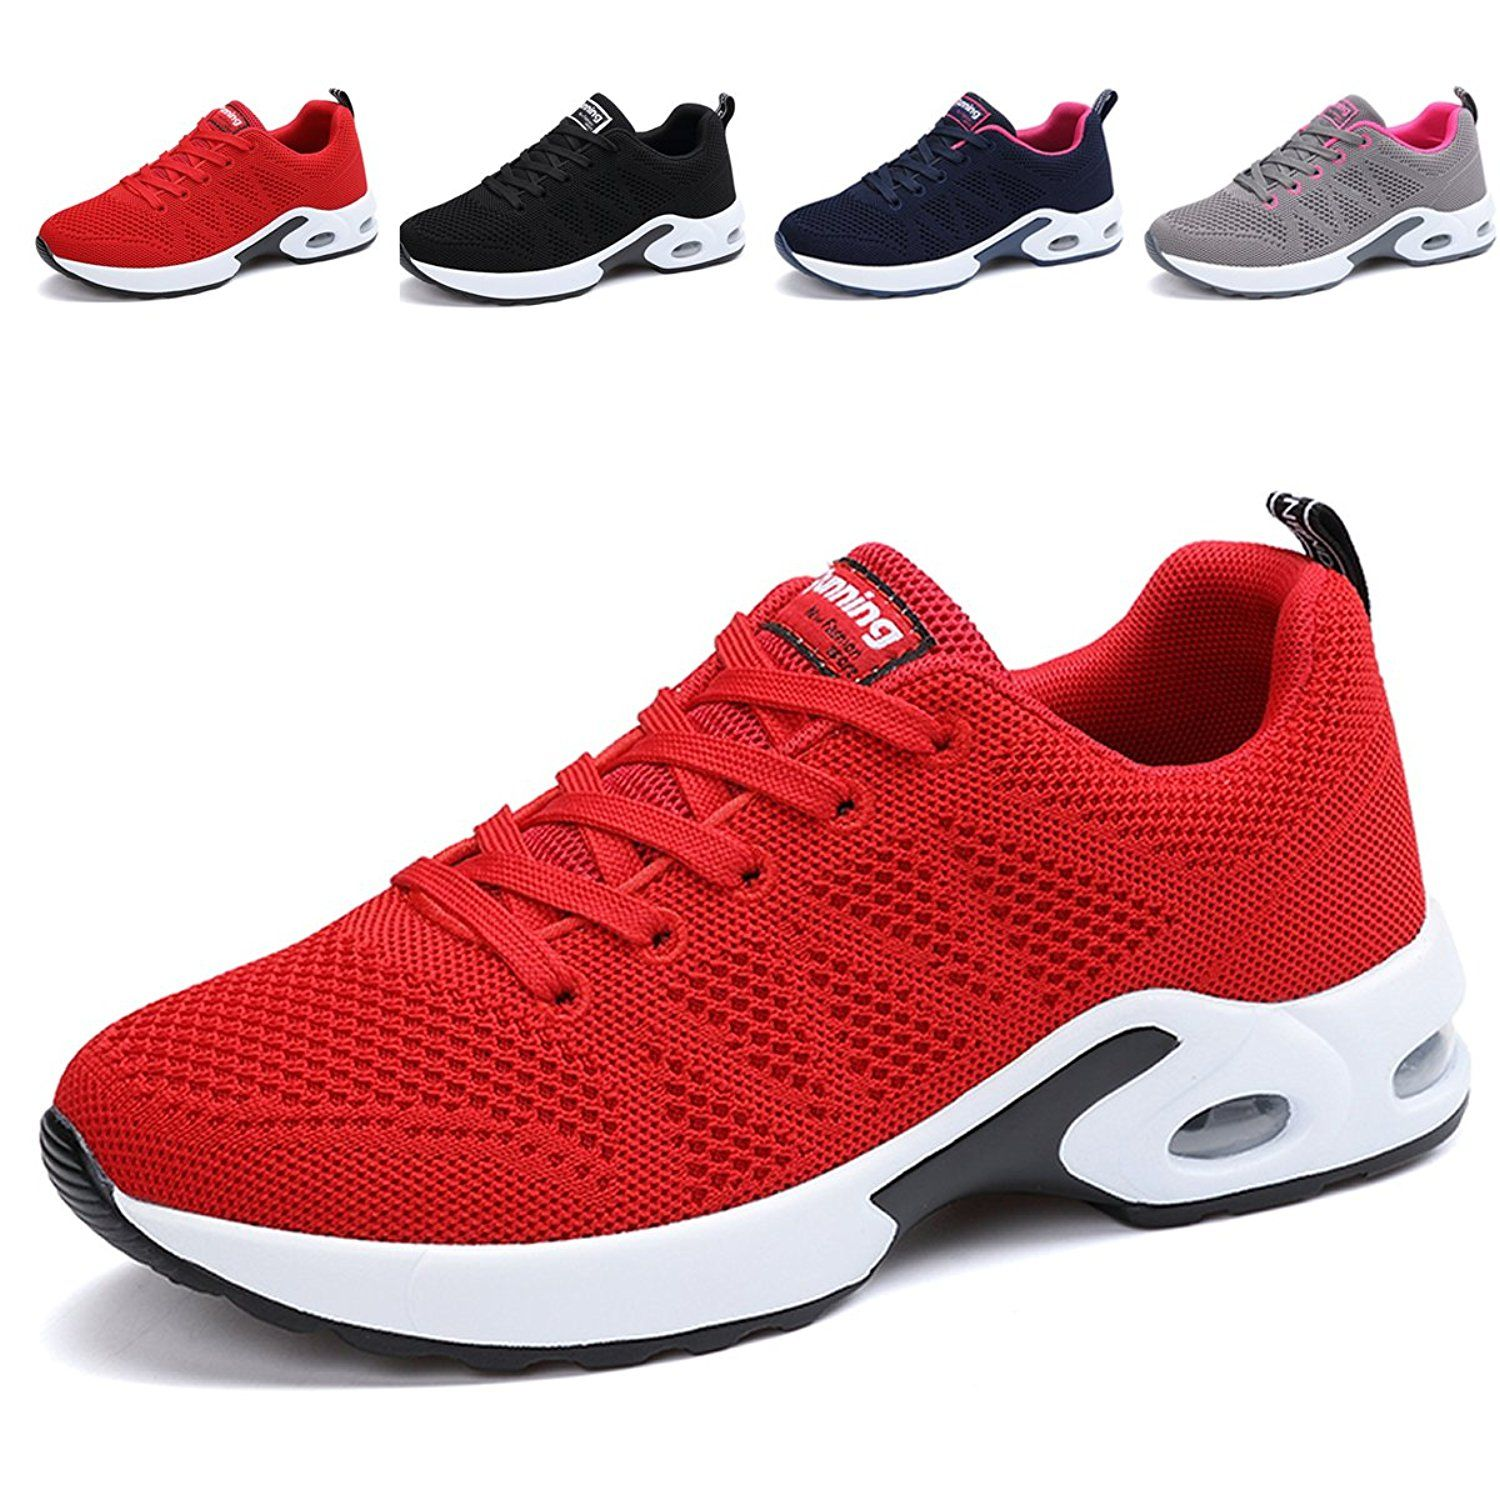 Womens Breathable Fashion Walking Sneakers Light Athletic Tennis Running Shoes